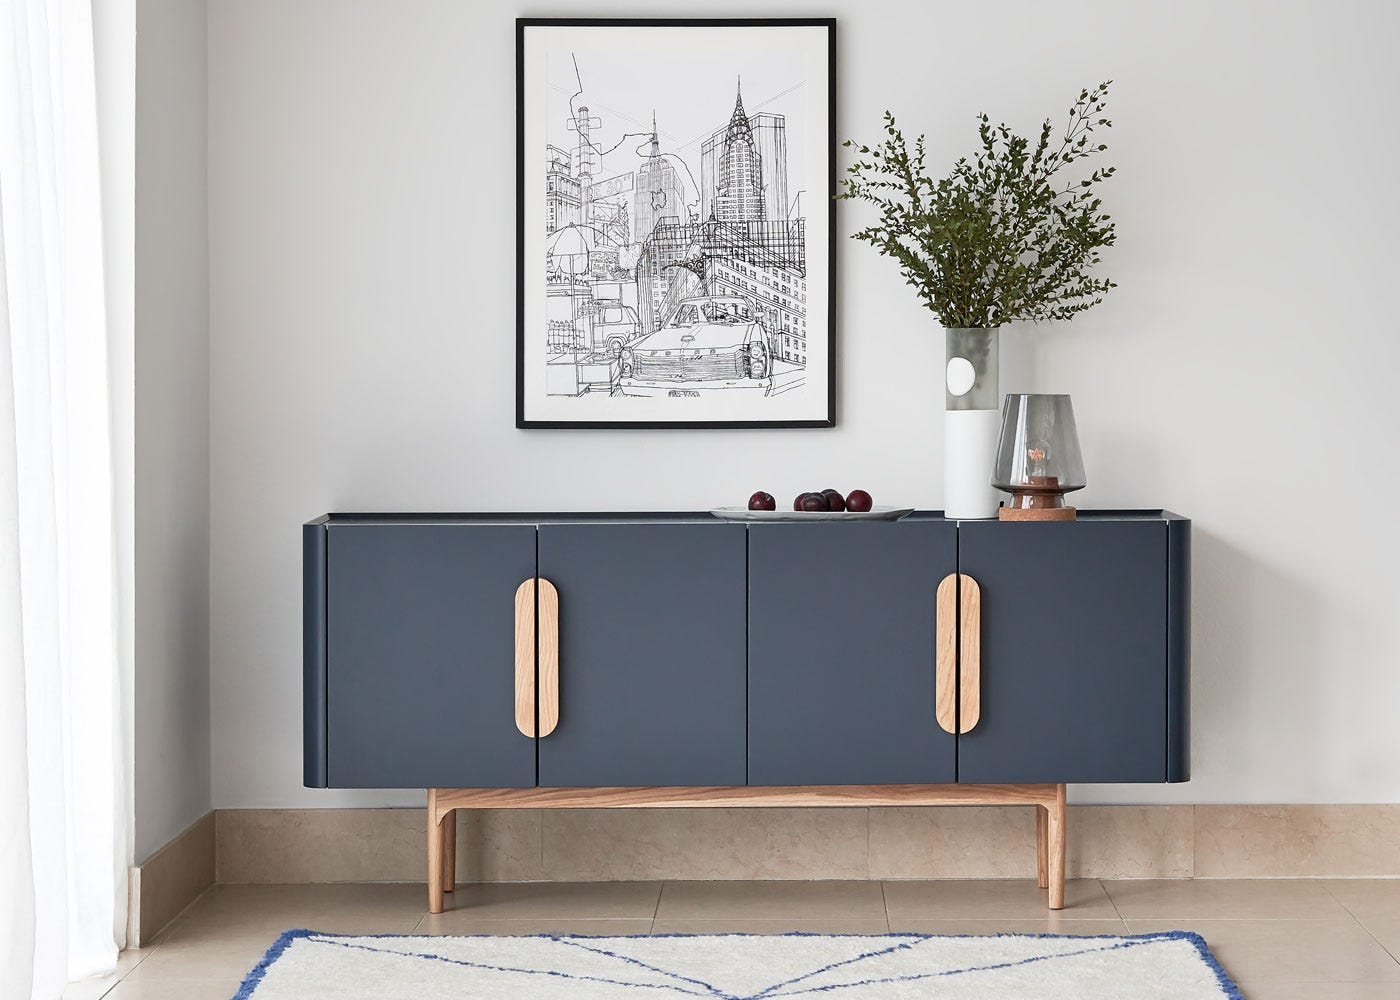 As shown: Arden table lamp off, Emilie sideboard.